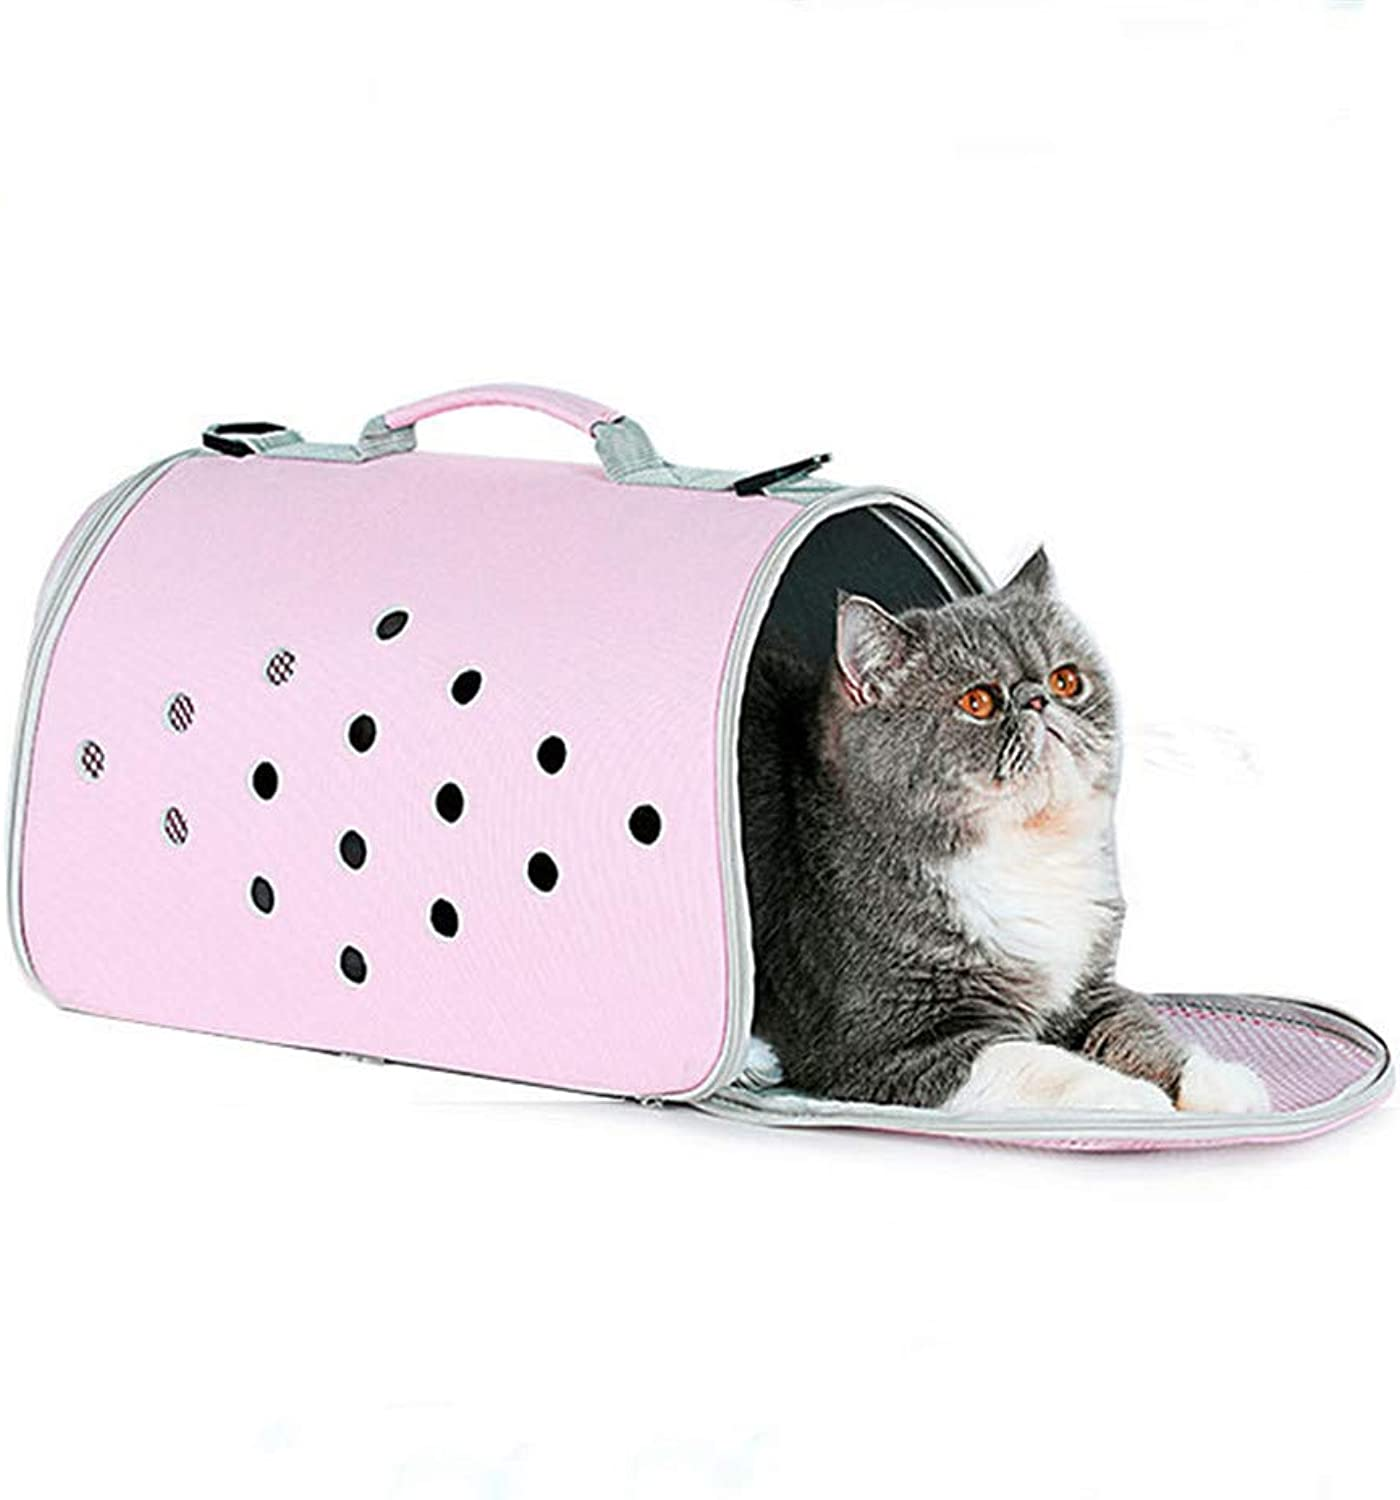 DHCY pet backpack handbag carrying bag pu breathable multifunction collapsible dog cat pet bag travel outdoor, 23  40  23cm,Pink